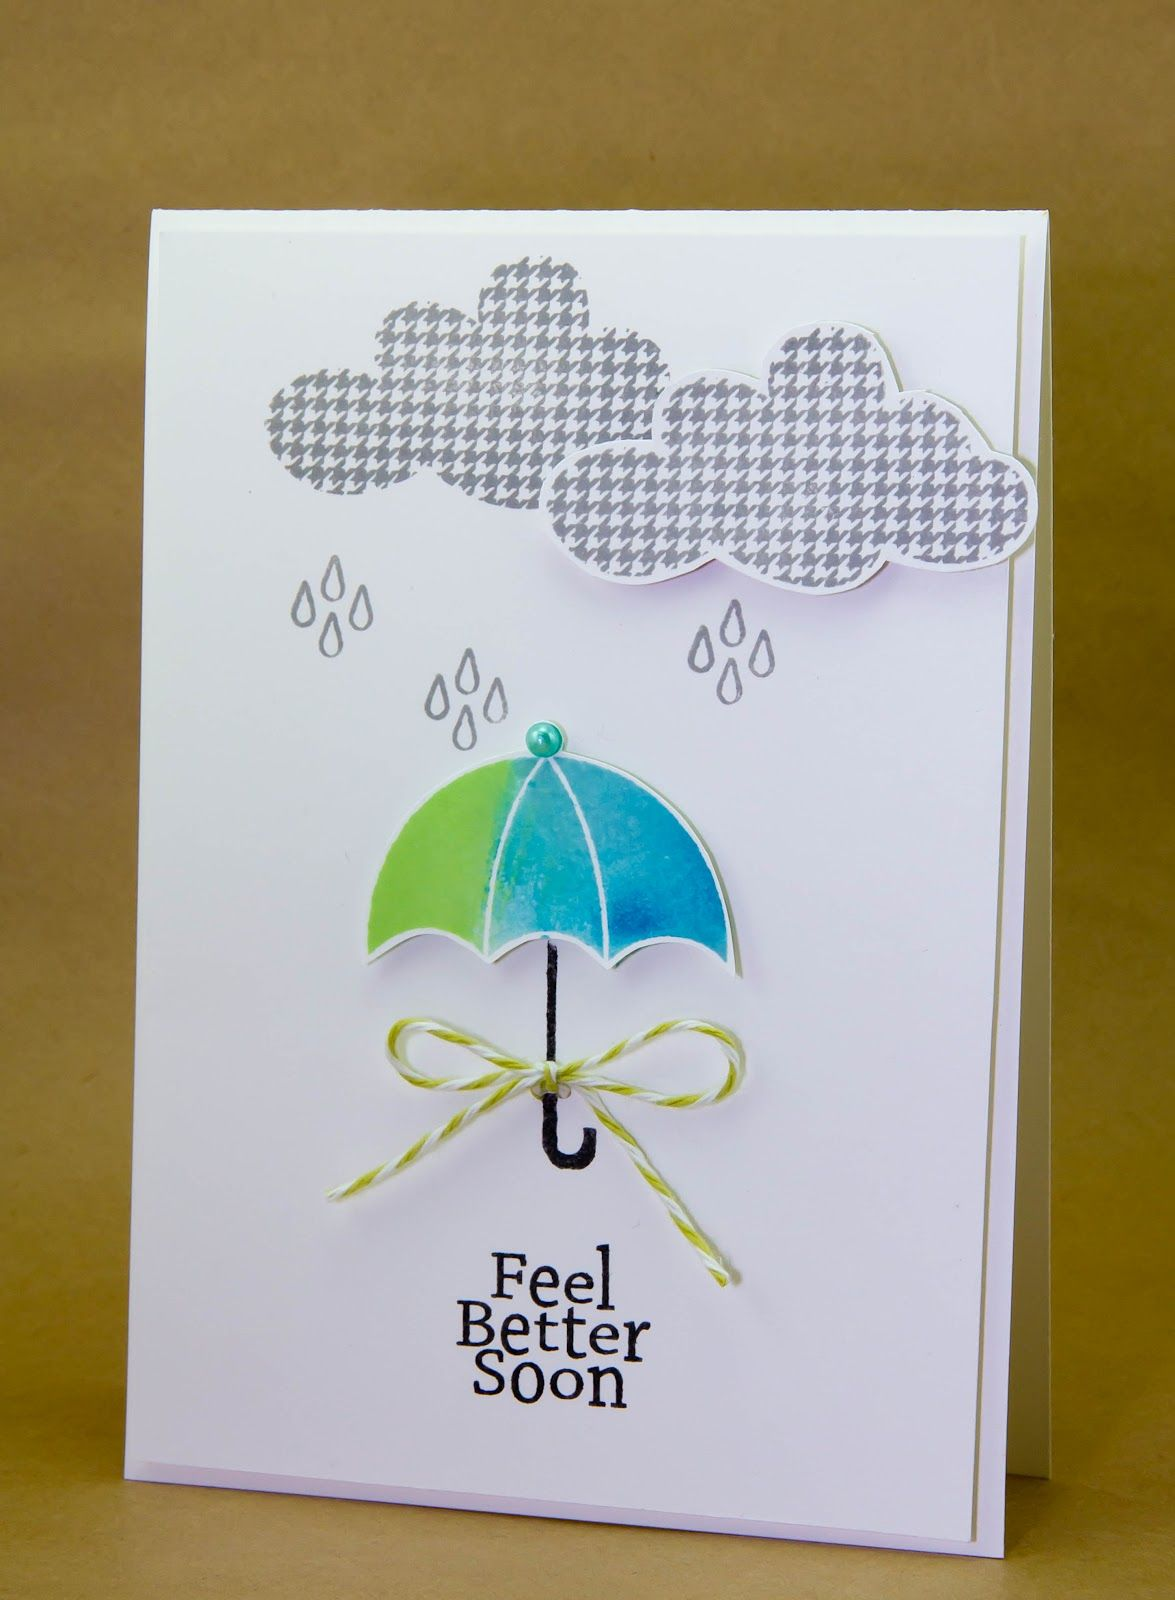 Creative Inspirations: Jane's Doodles - Feel Better Soon remember cloud dies